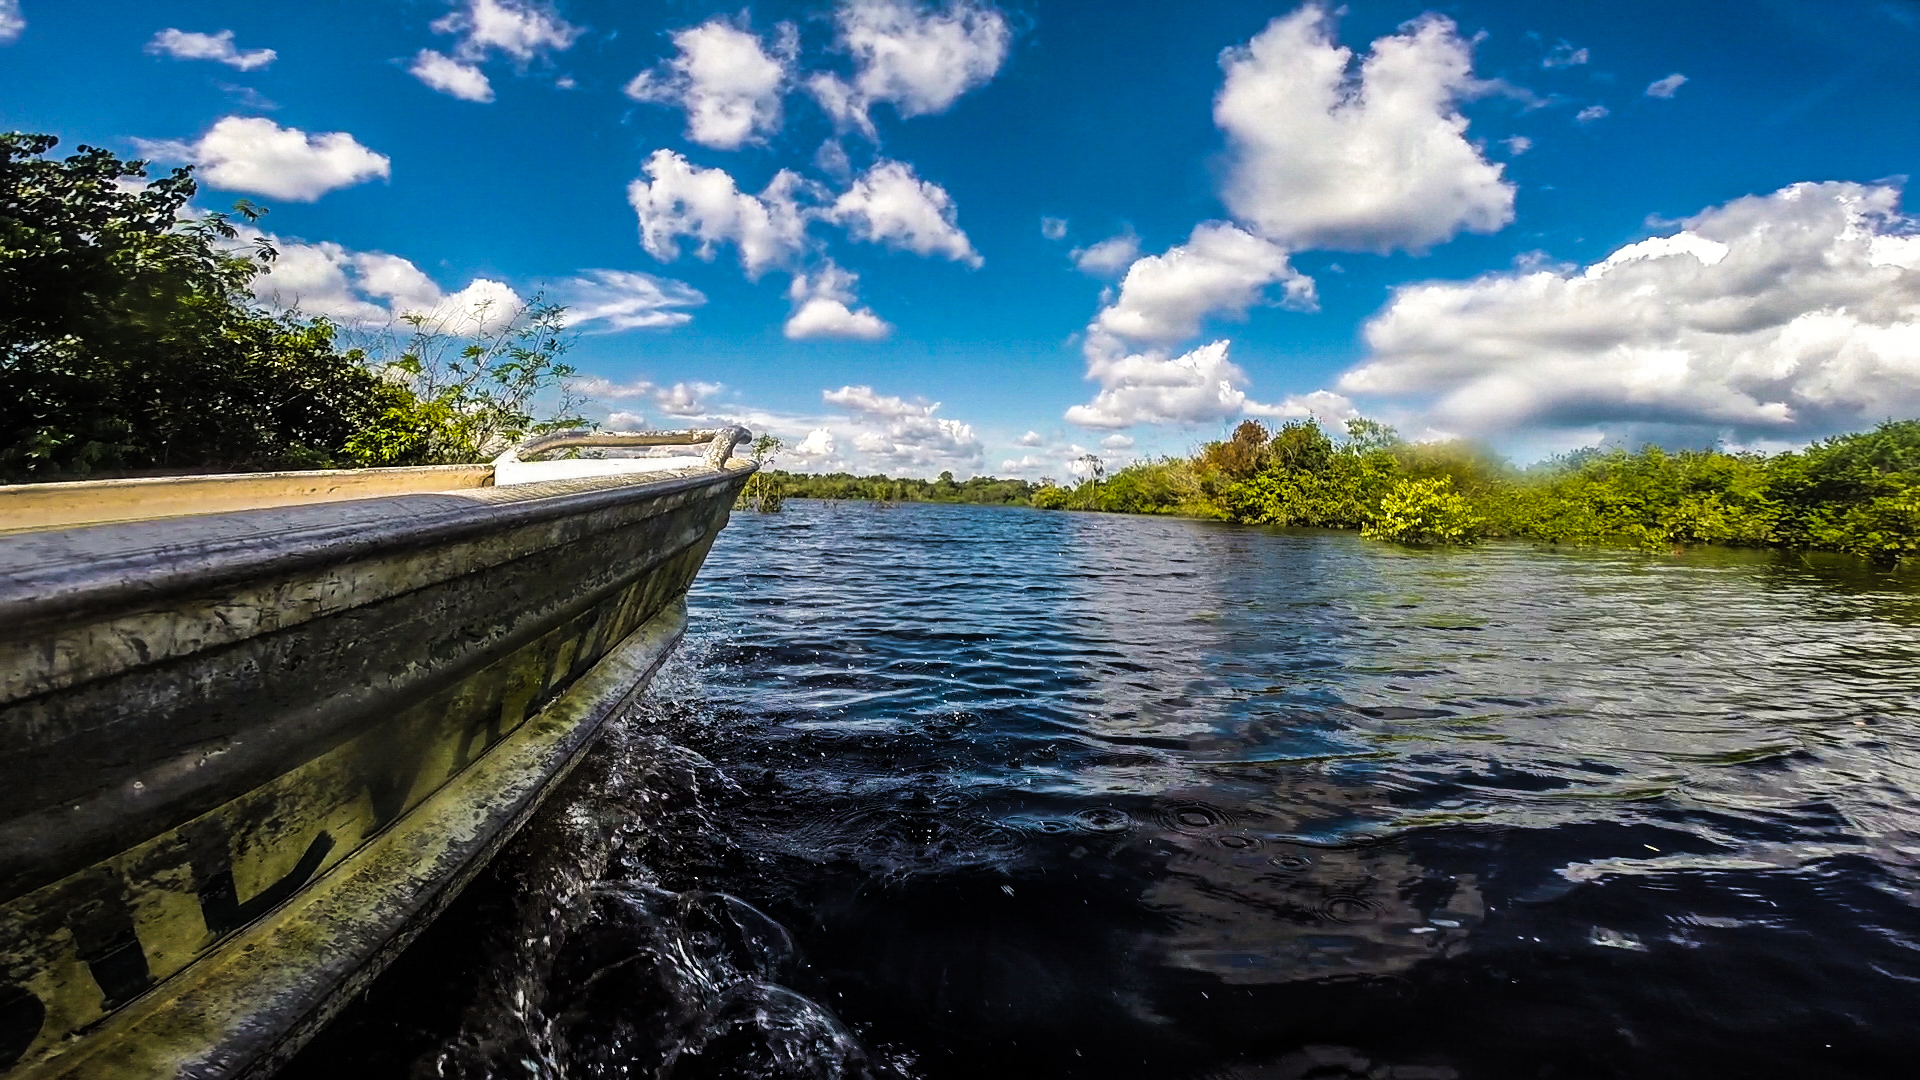 I film from the side of a swift boat on the Amazon tributary that surrounds the camp